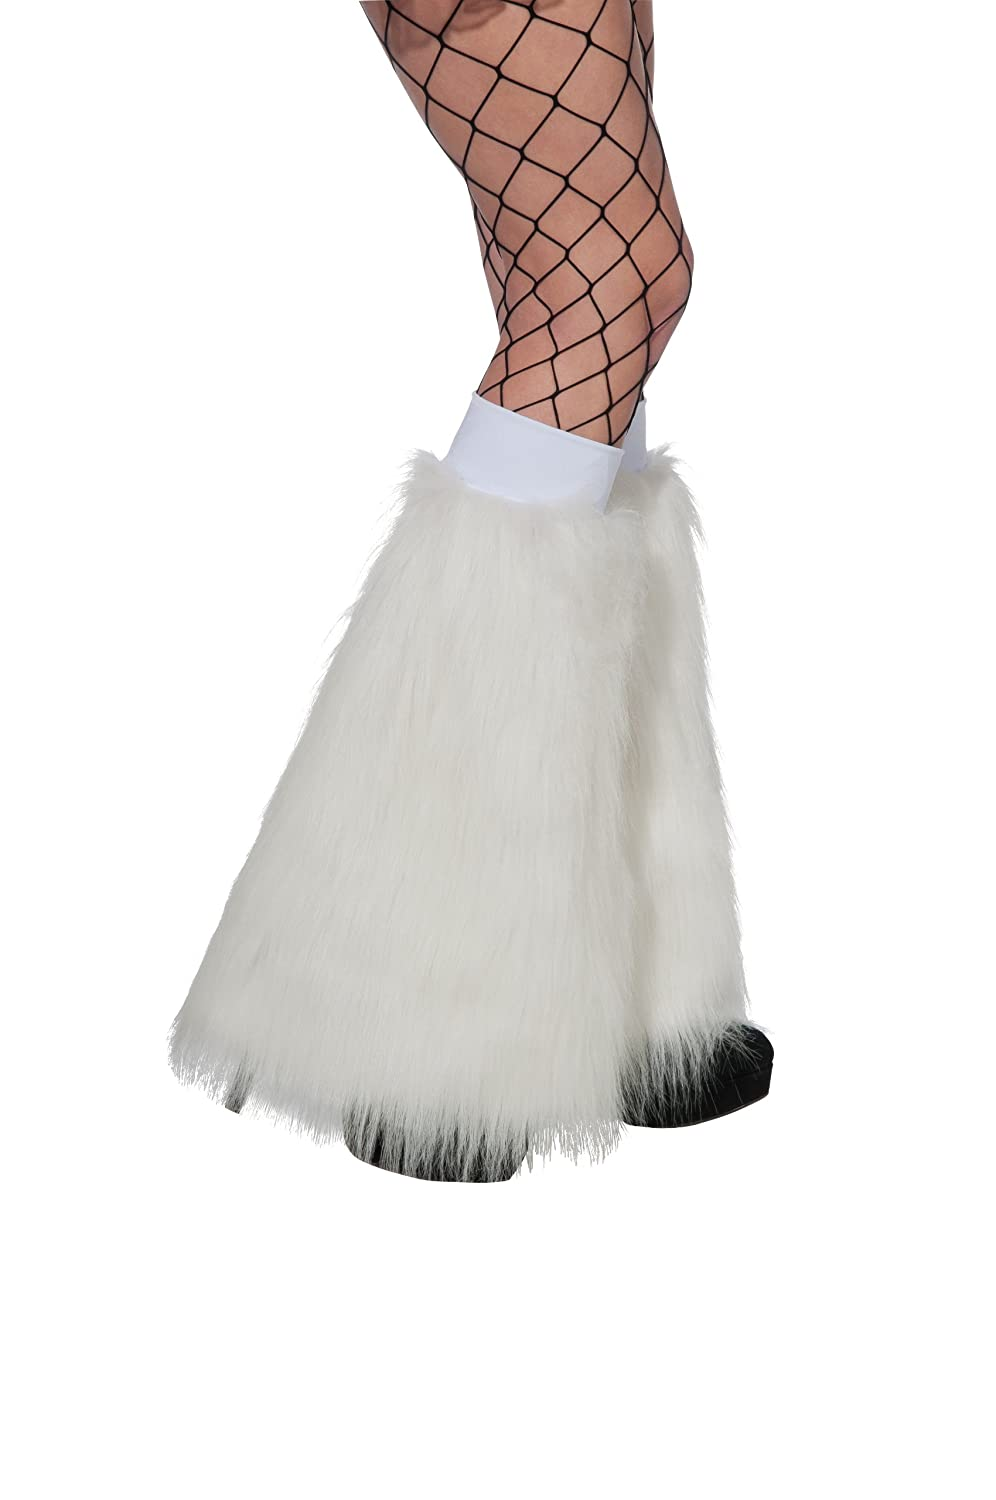 Rubie's Costume Fluffies Faux Furry Leg Warmers White One Size Rubies Costumes - Apparel 32047